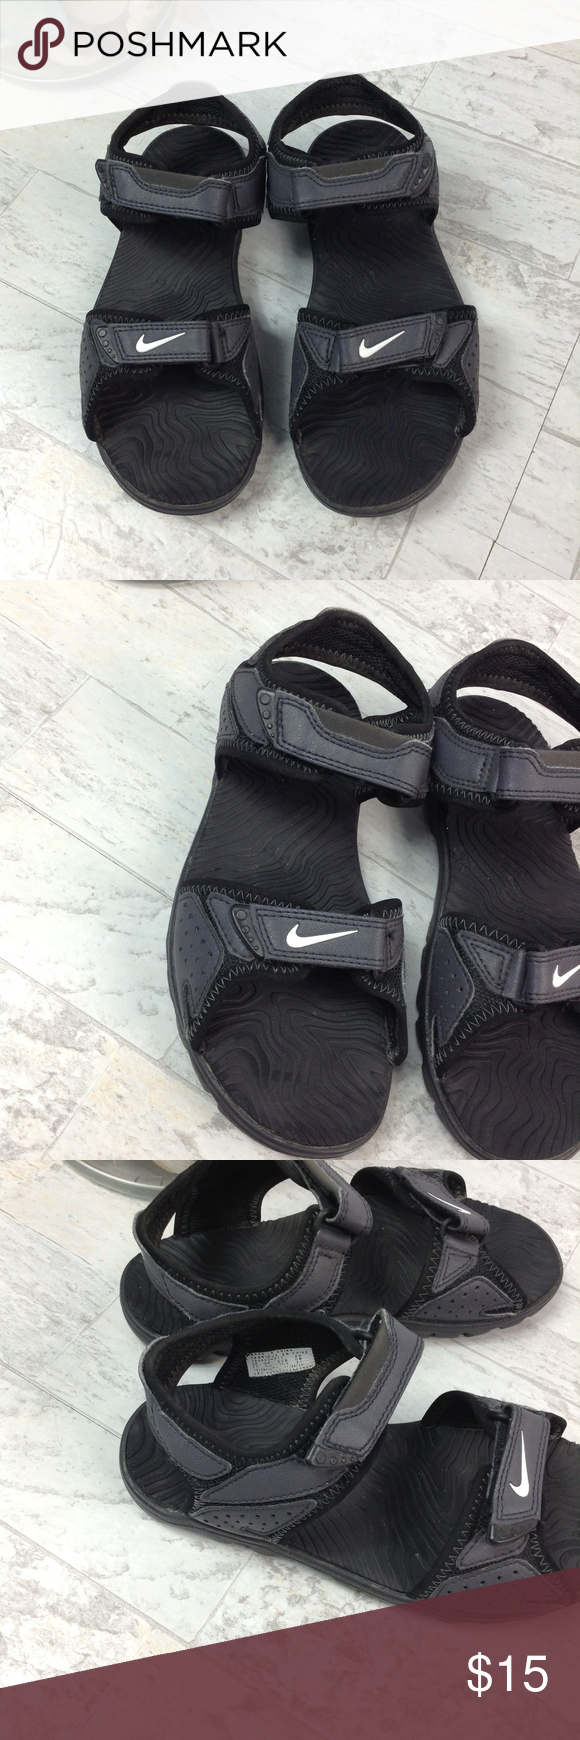 Nike sandals with velcro straps | Nike